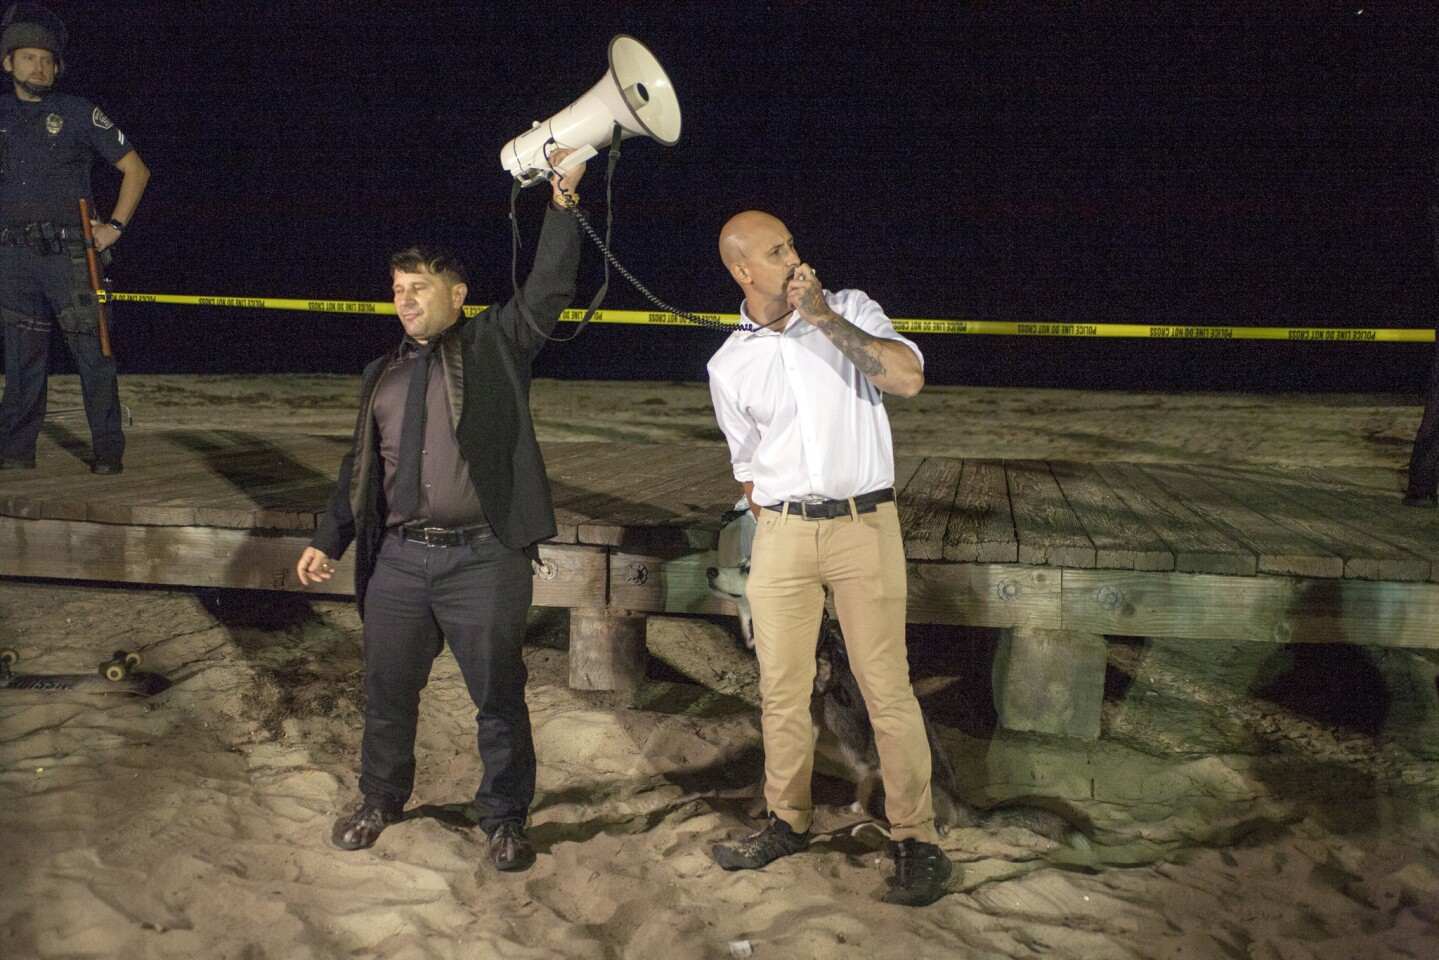 As group member Bassad Pesci holds the bullhorn, Onward America organizer Johnny Benitez thanks police for their presence and restraint during the group's rally Sunday night at Main Beach in Laguna Beach.